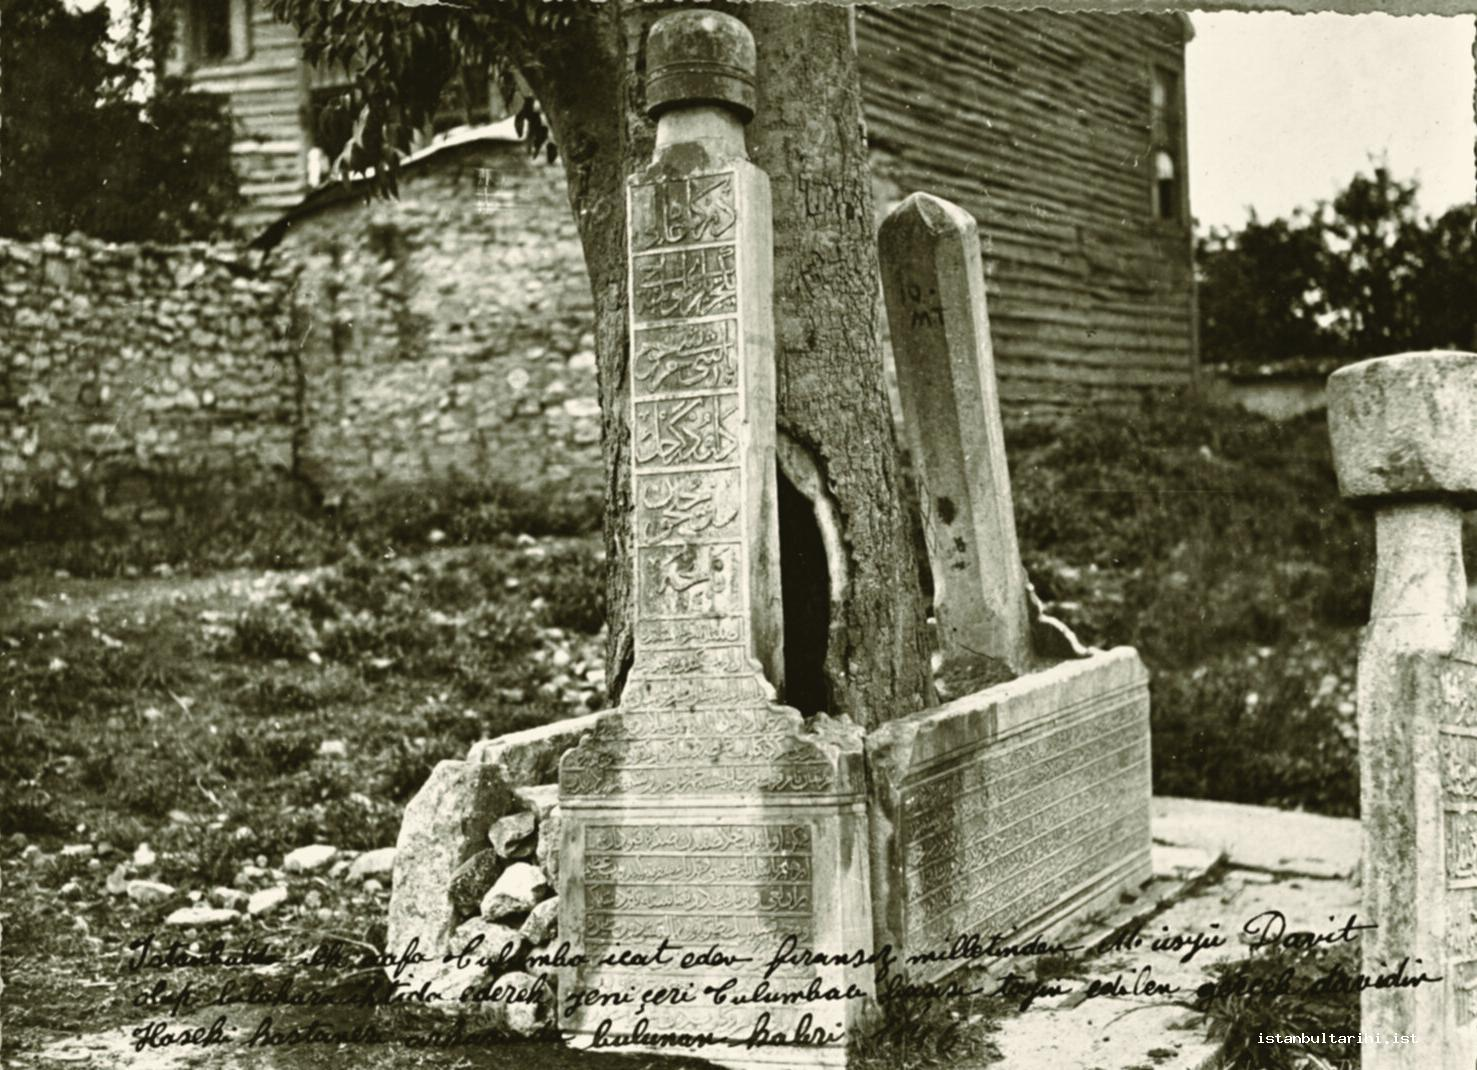 4- The grave of Gerçek Davud Ağa who started a new method in firefighting by building a new pump in 1720